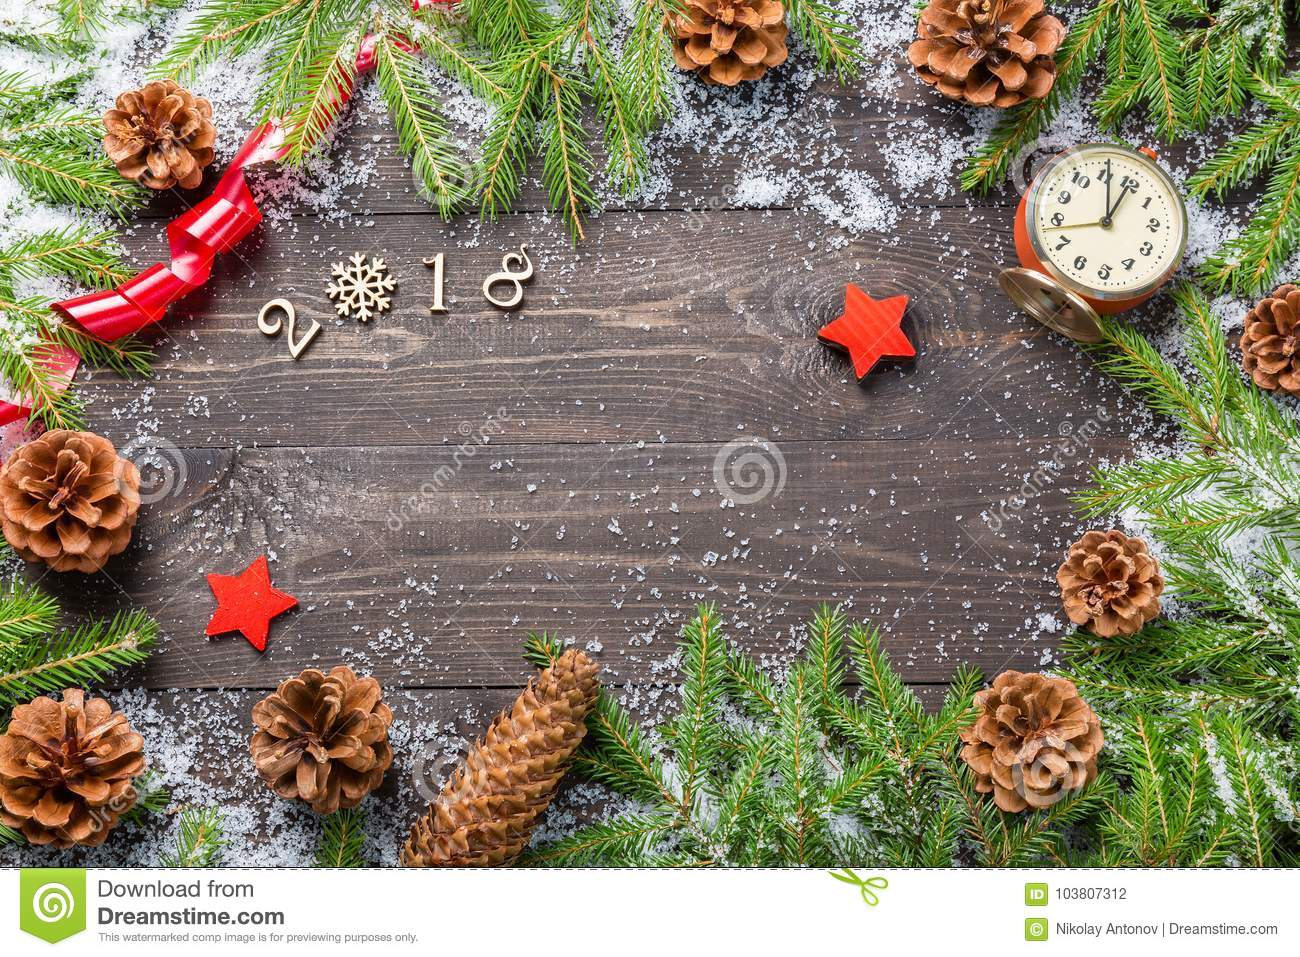 Christmas or new year frame for your project with copy space. Christmas fir trees in snow with cones, vintage clock, decorative st